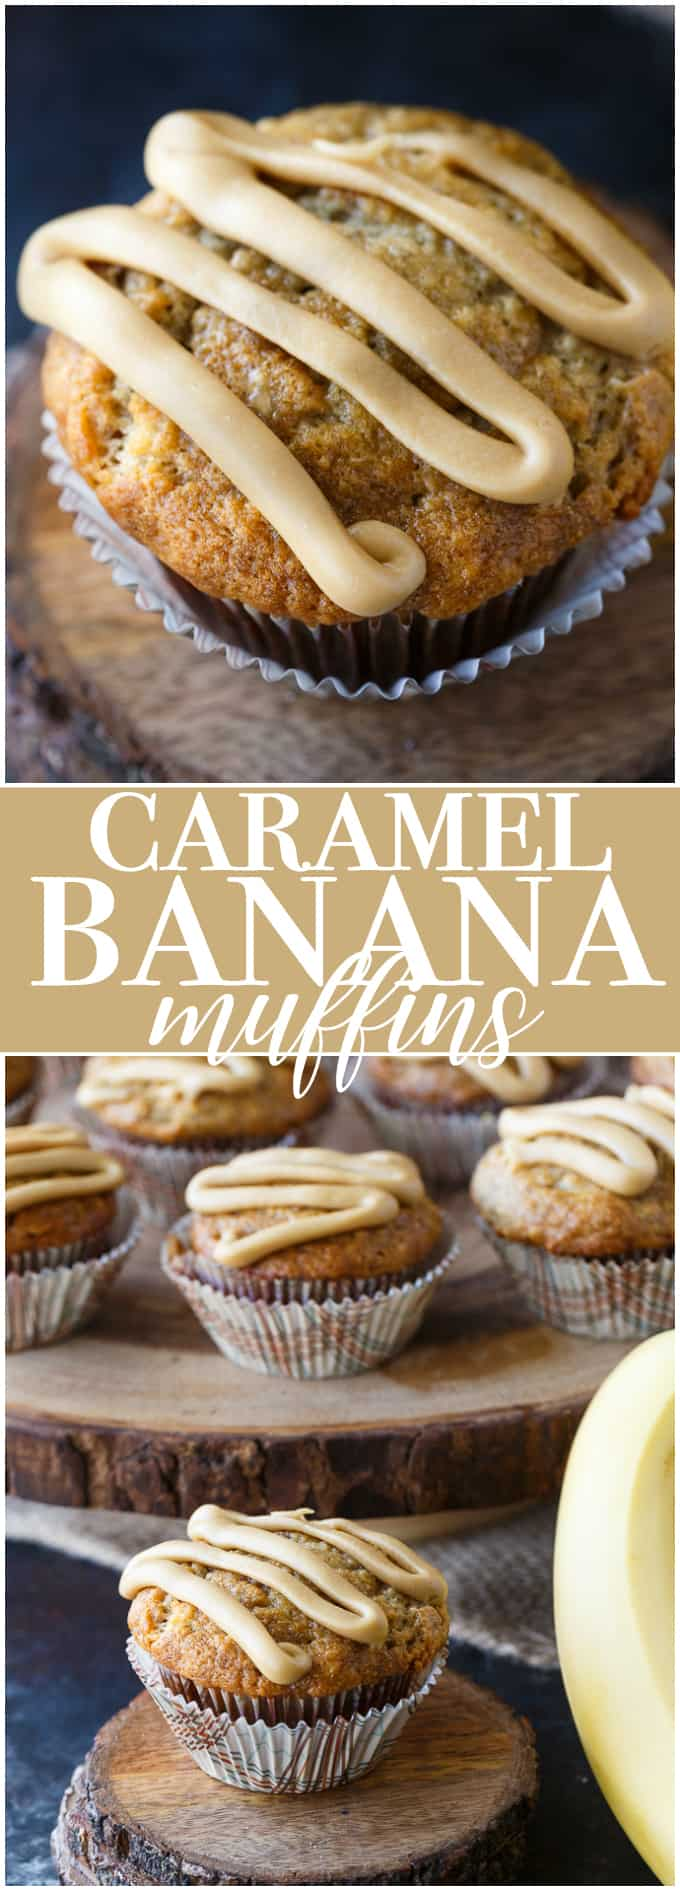 Caramel Banana Muffins - Incredibly moist and flavourful banana muffins topped with a sinfully sweet ribbon of homemade caramel.